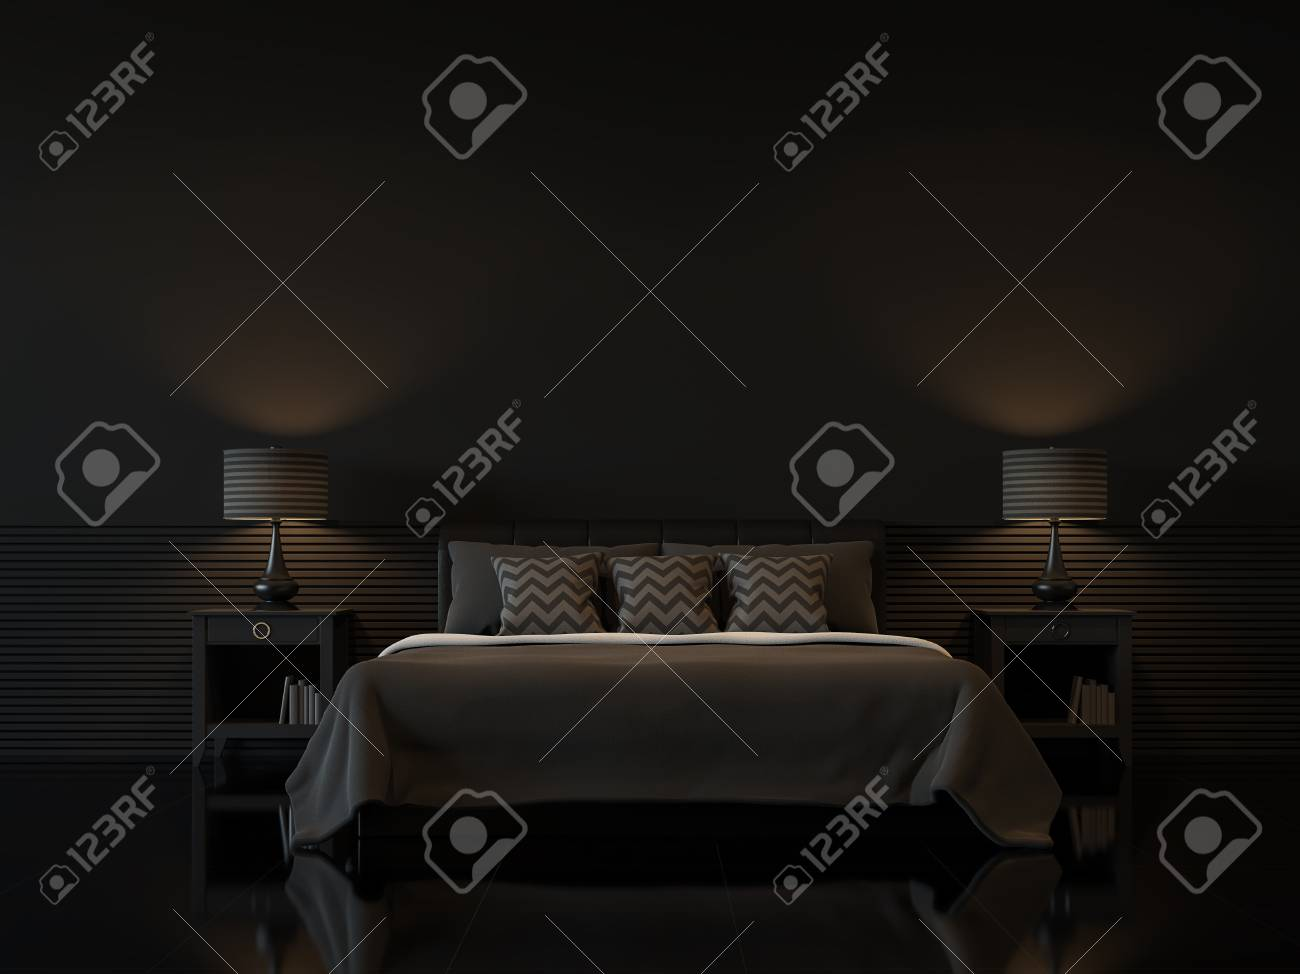 Modern bedroom interior with empty black wall 3d rendering image.There are minimalist style decorate room with black furniture,floor,wall - 73581215